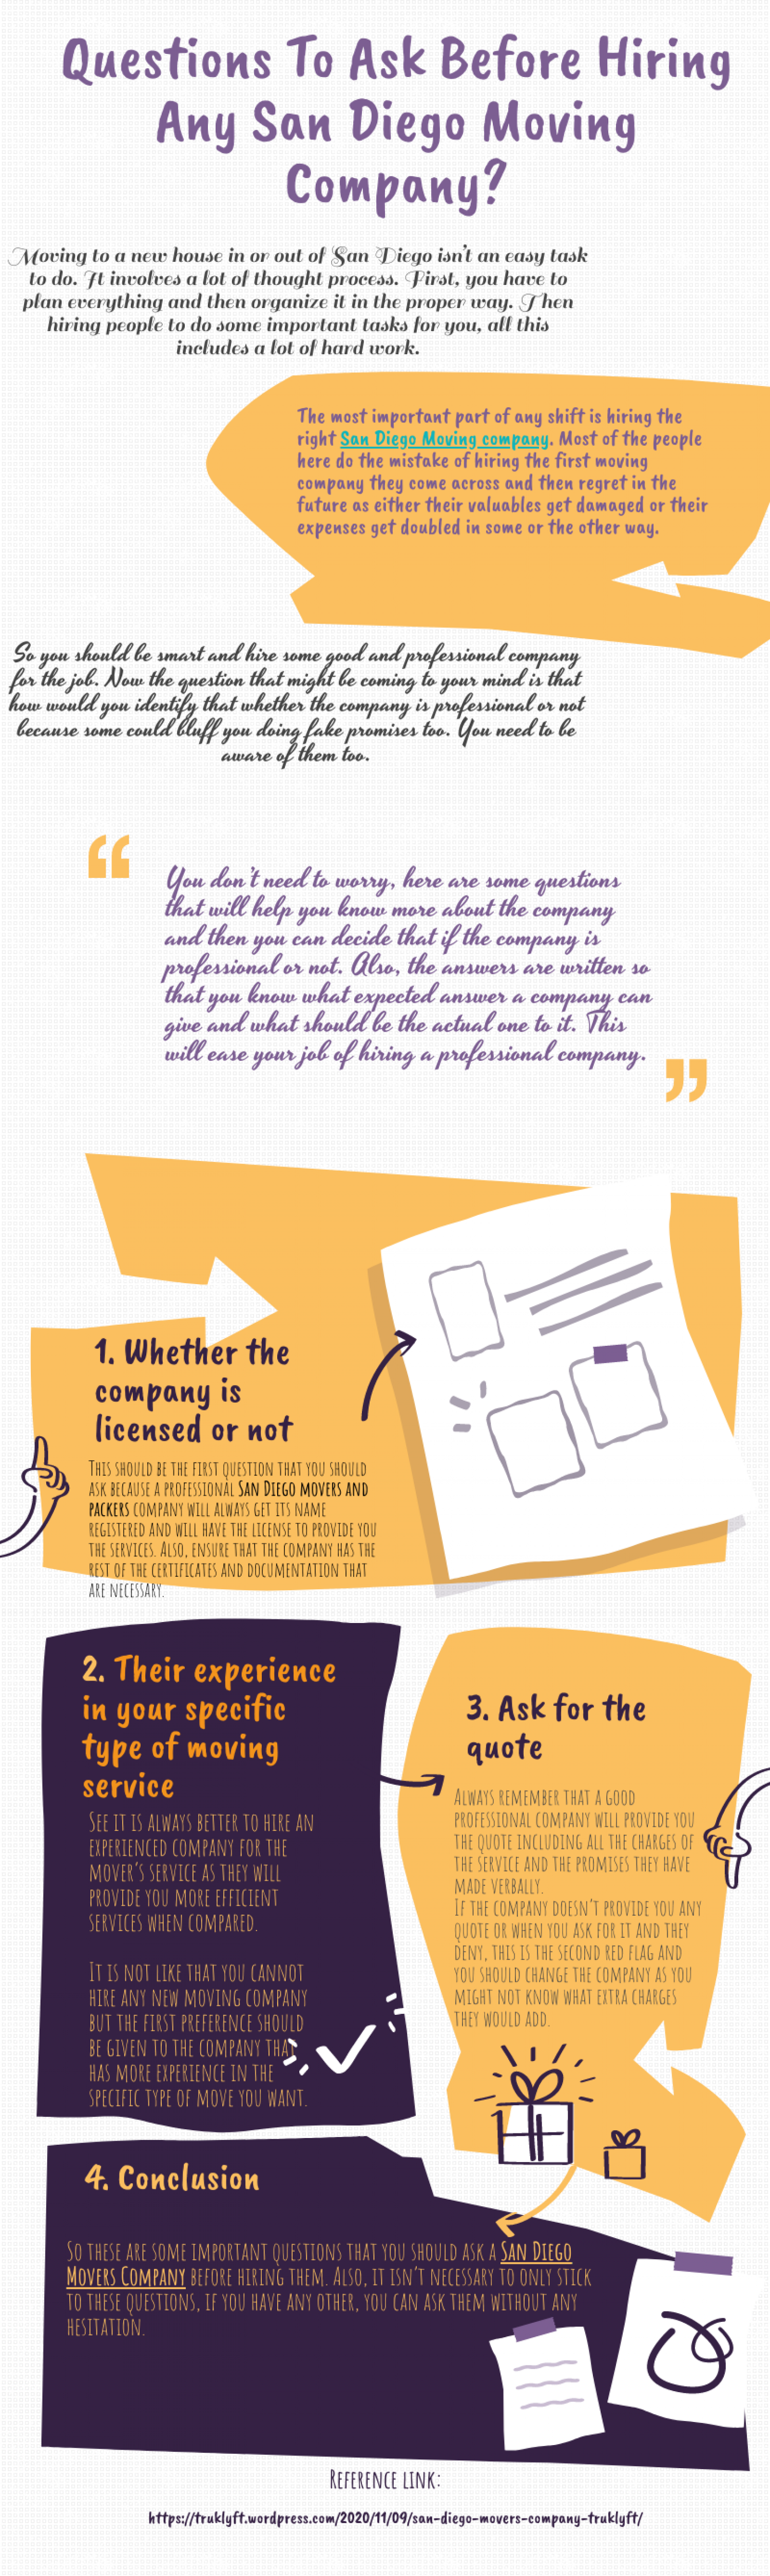 Questions To Ask Before Hiring Any San Diego Moving Company Infographic